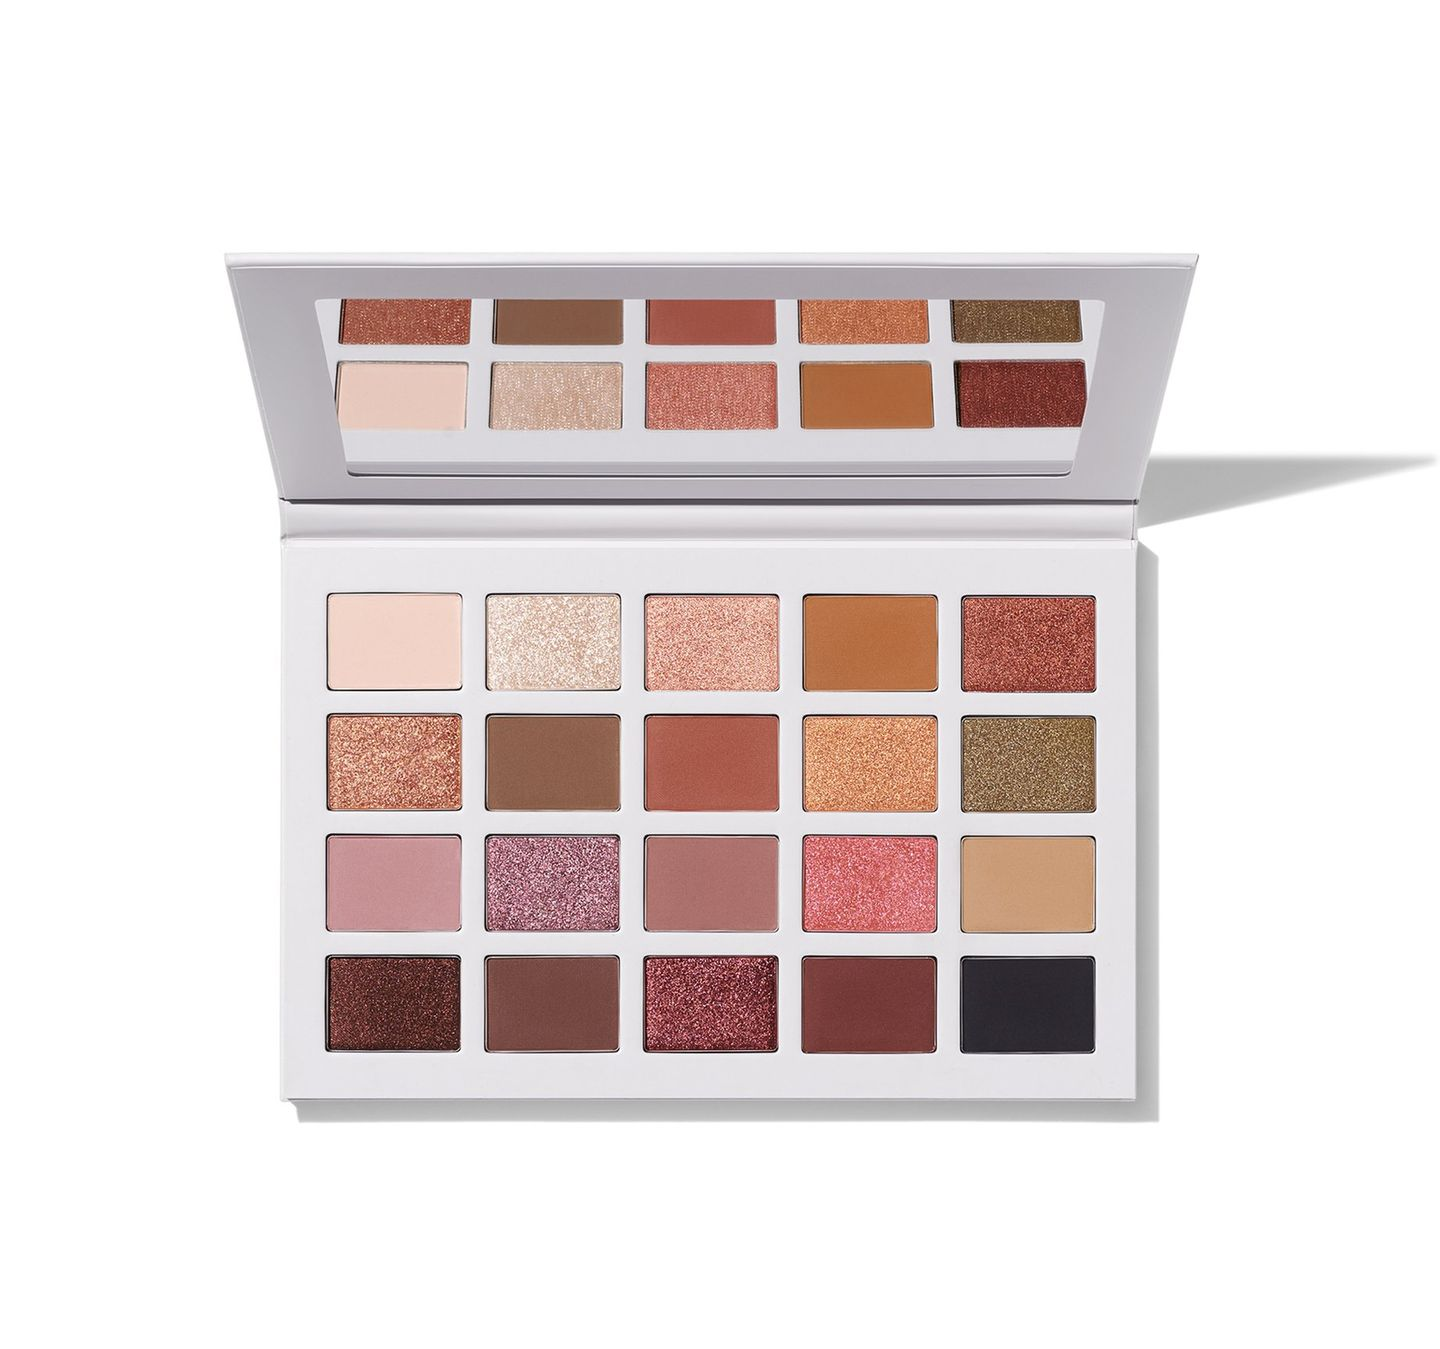 Madison Beer x MORPHE Channel Surfing Artistry Palette